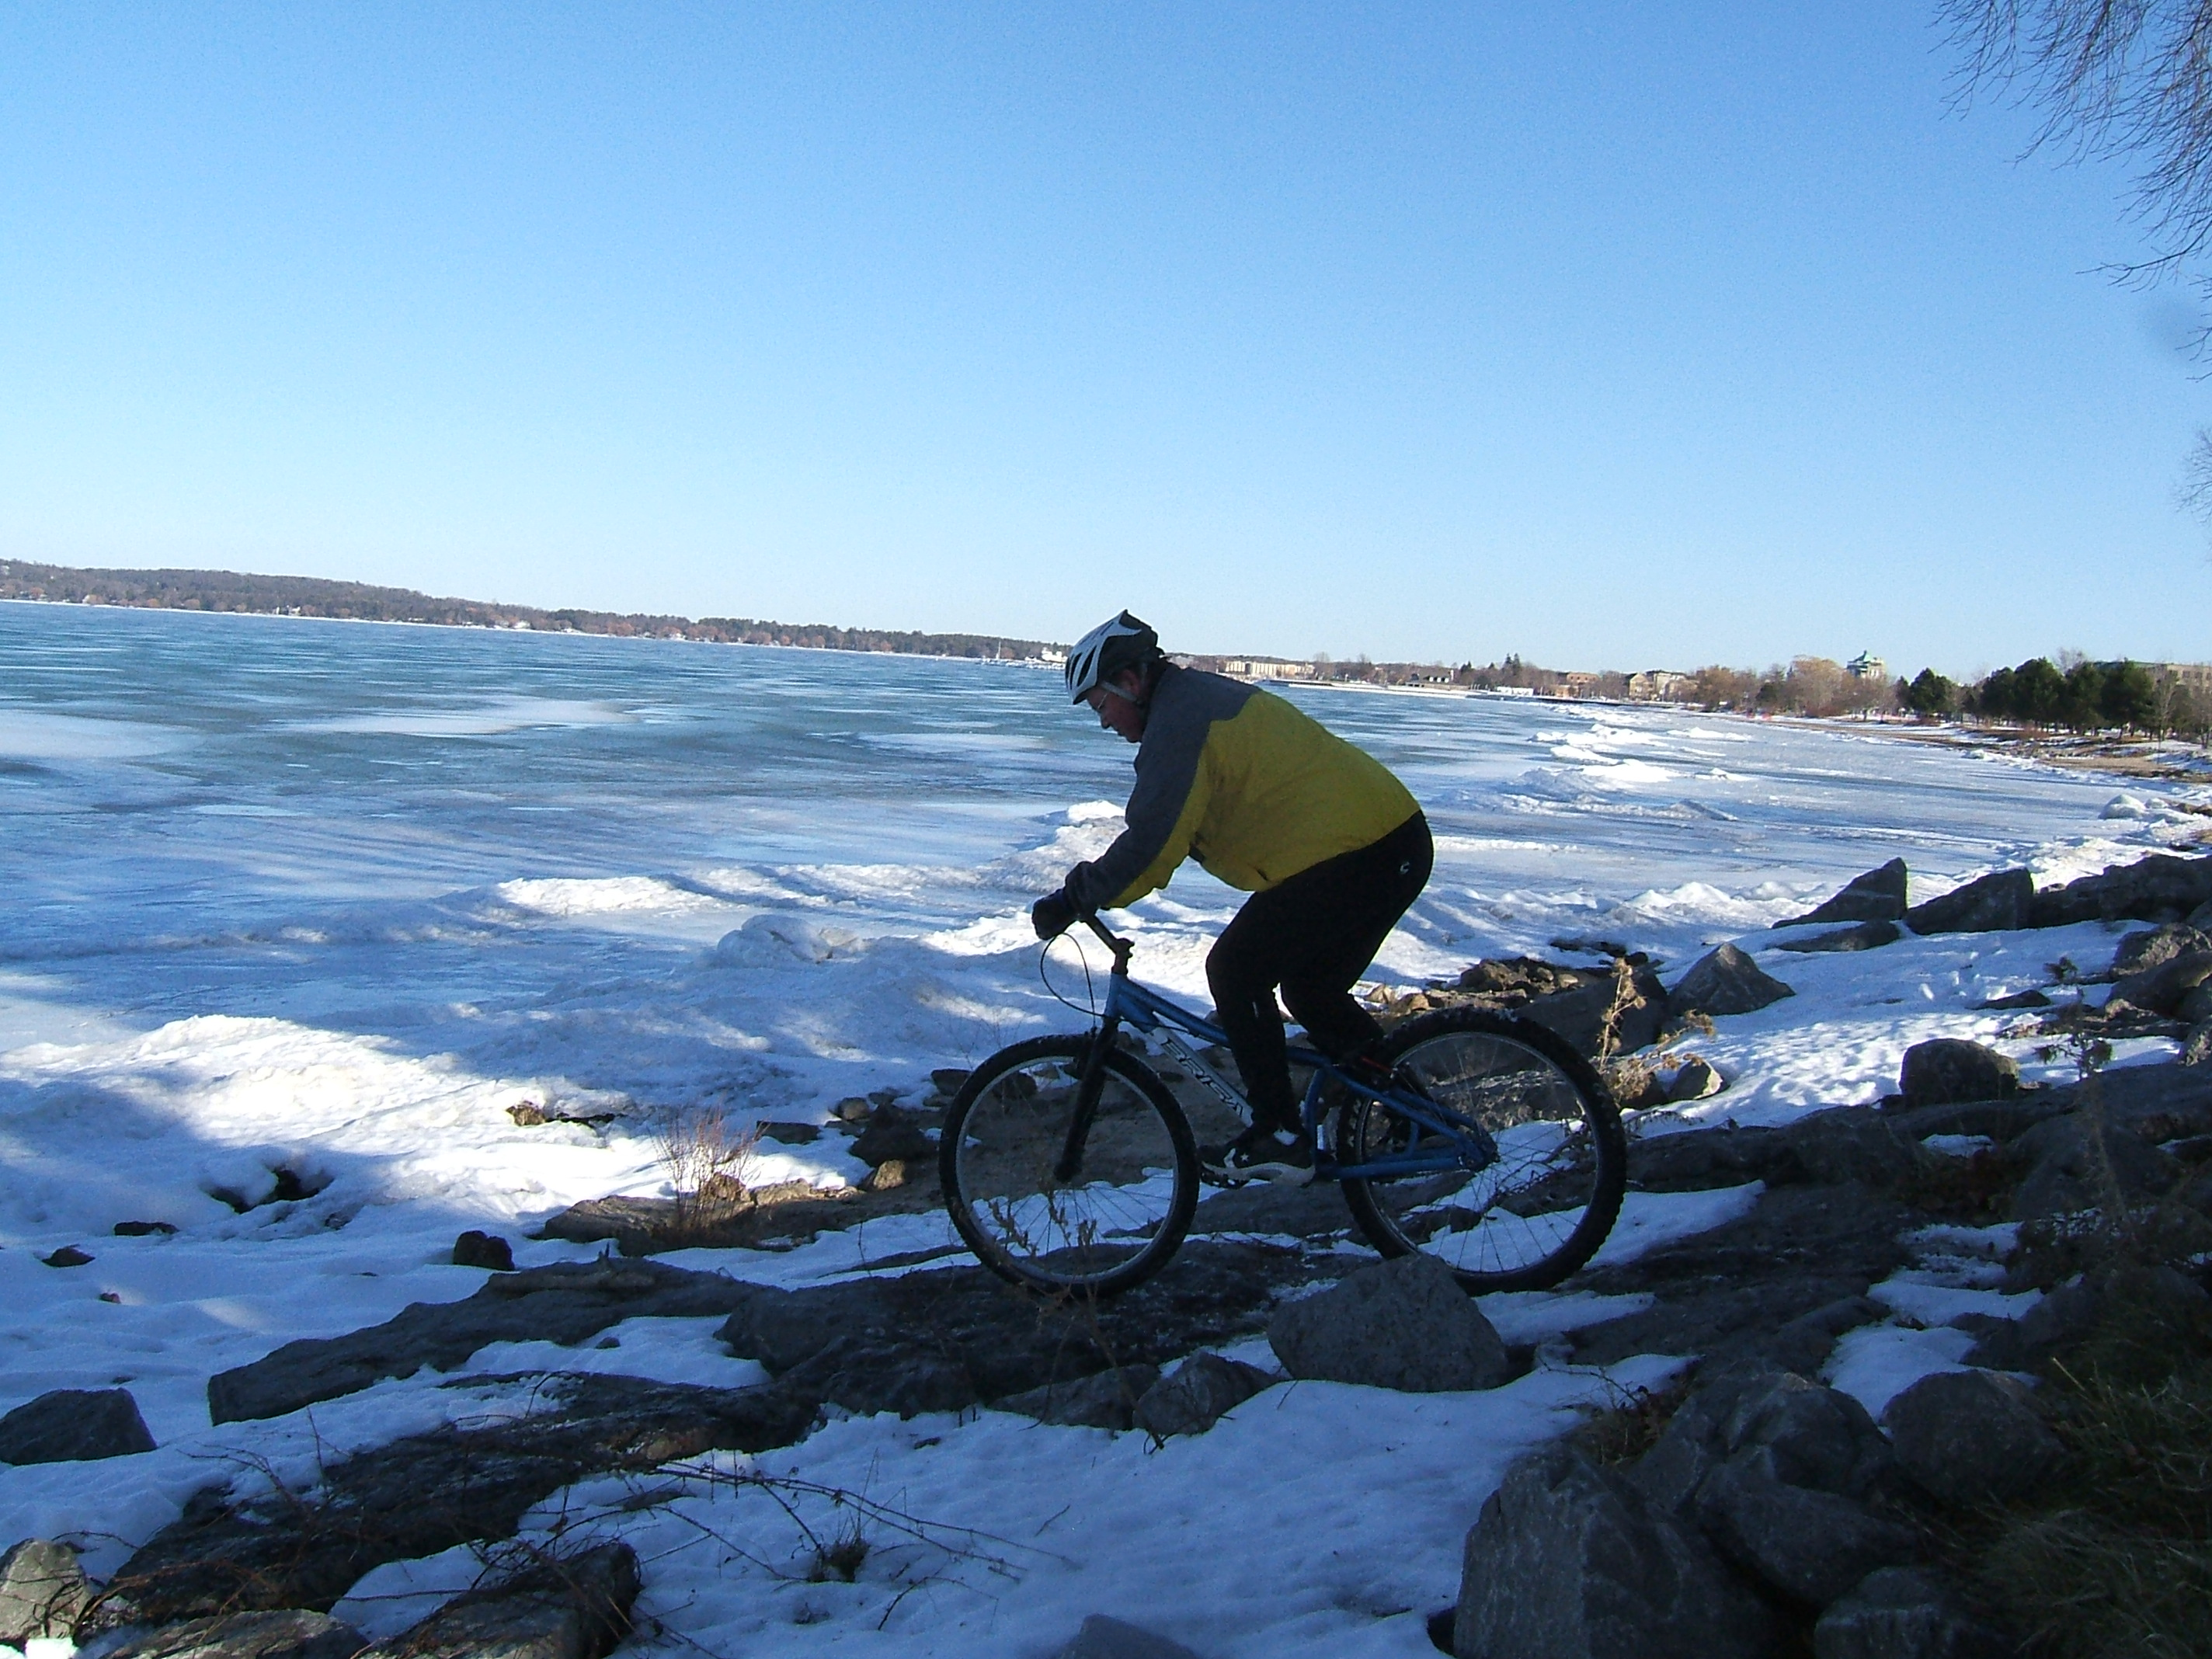 The snow really added to the challenge of riding the rocks by west end beach